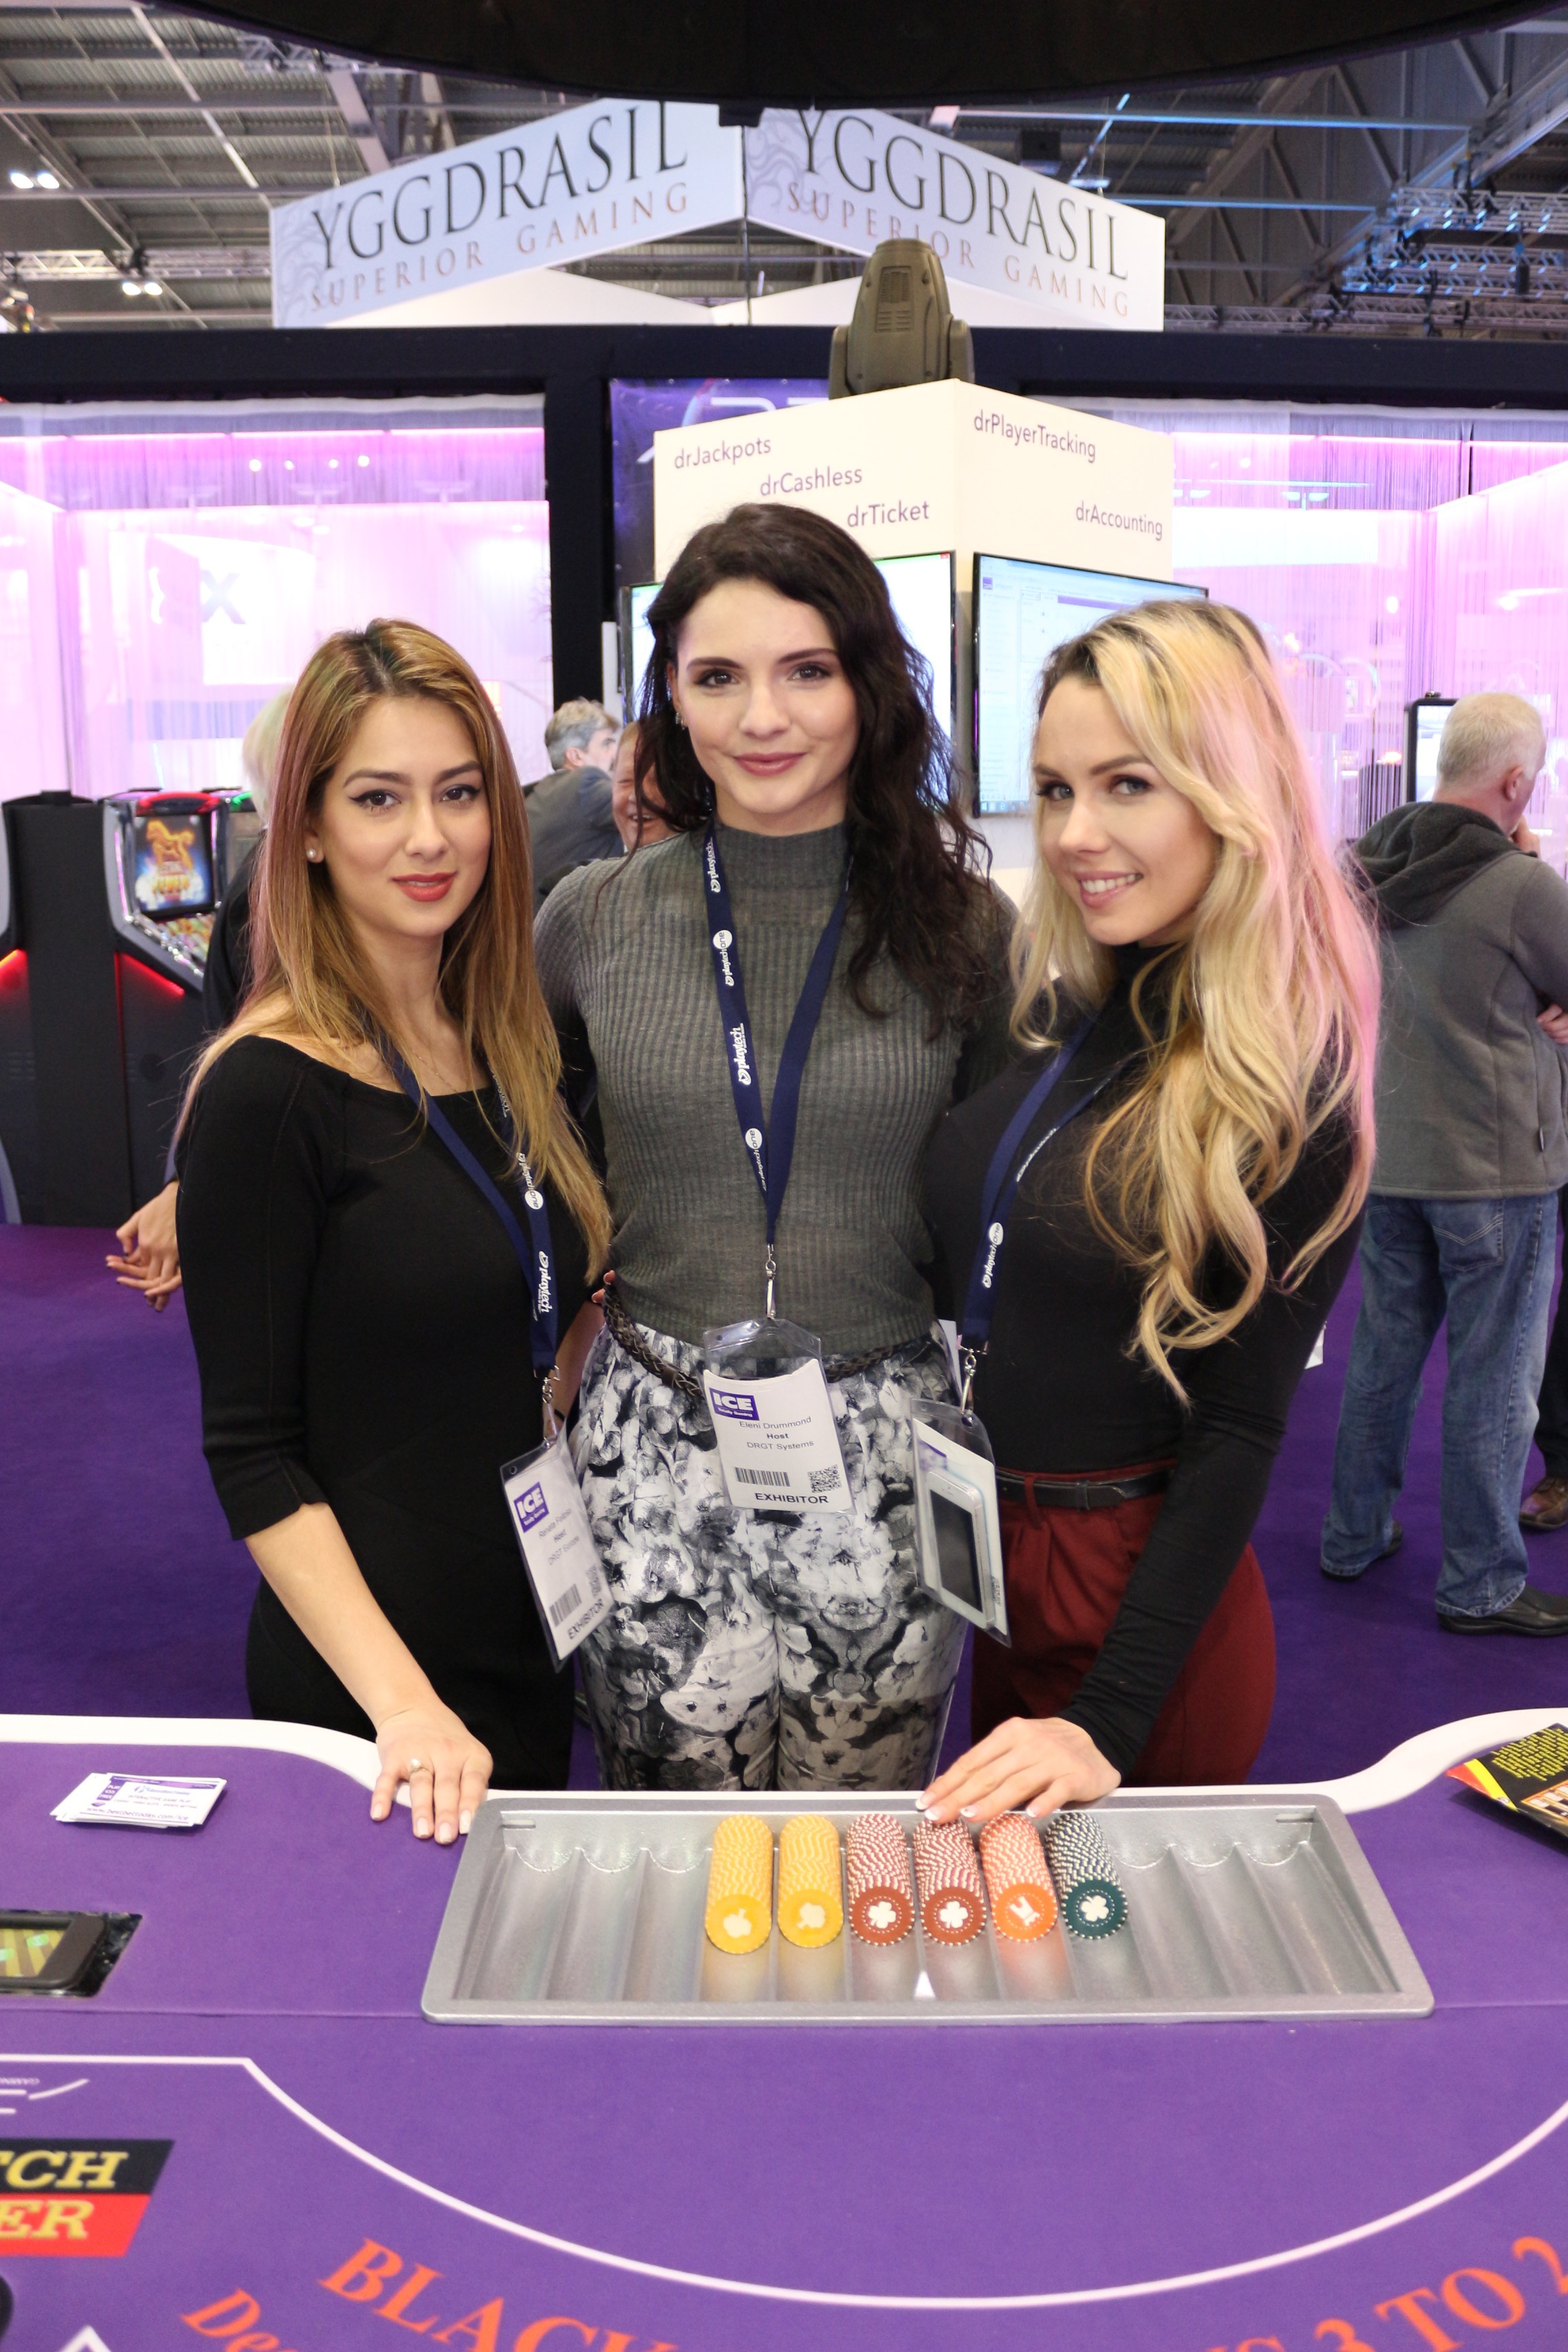 Exhibition Stand Companies In Dubai : Promotion girls agency across the uk exhibition